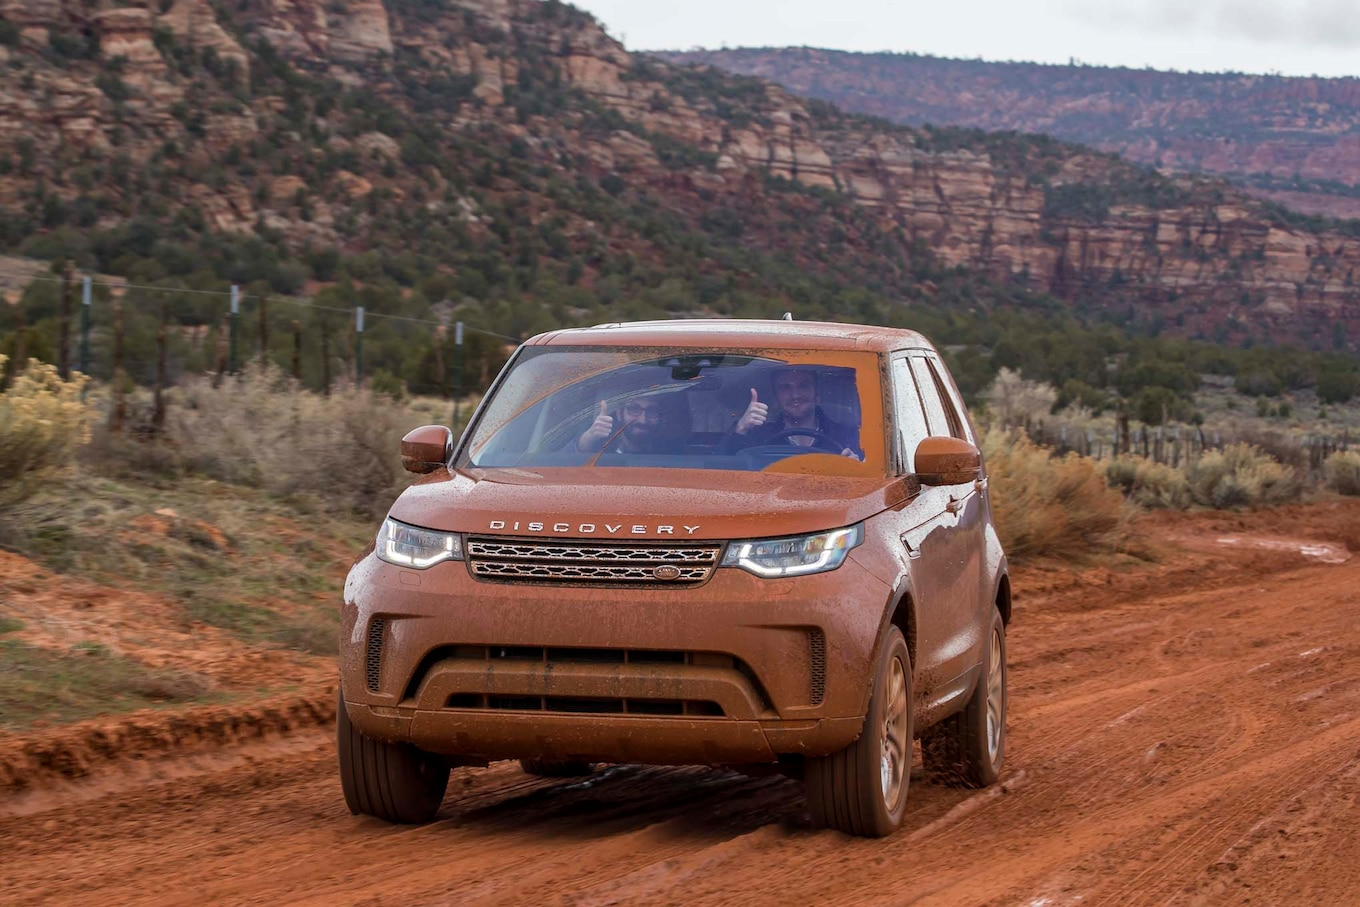 2017 Land Rover Discovery off road 49 Motor Trend